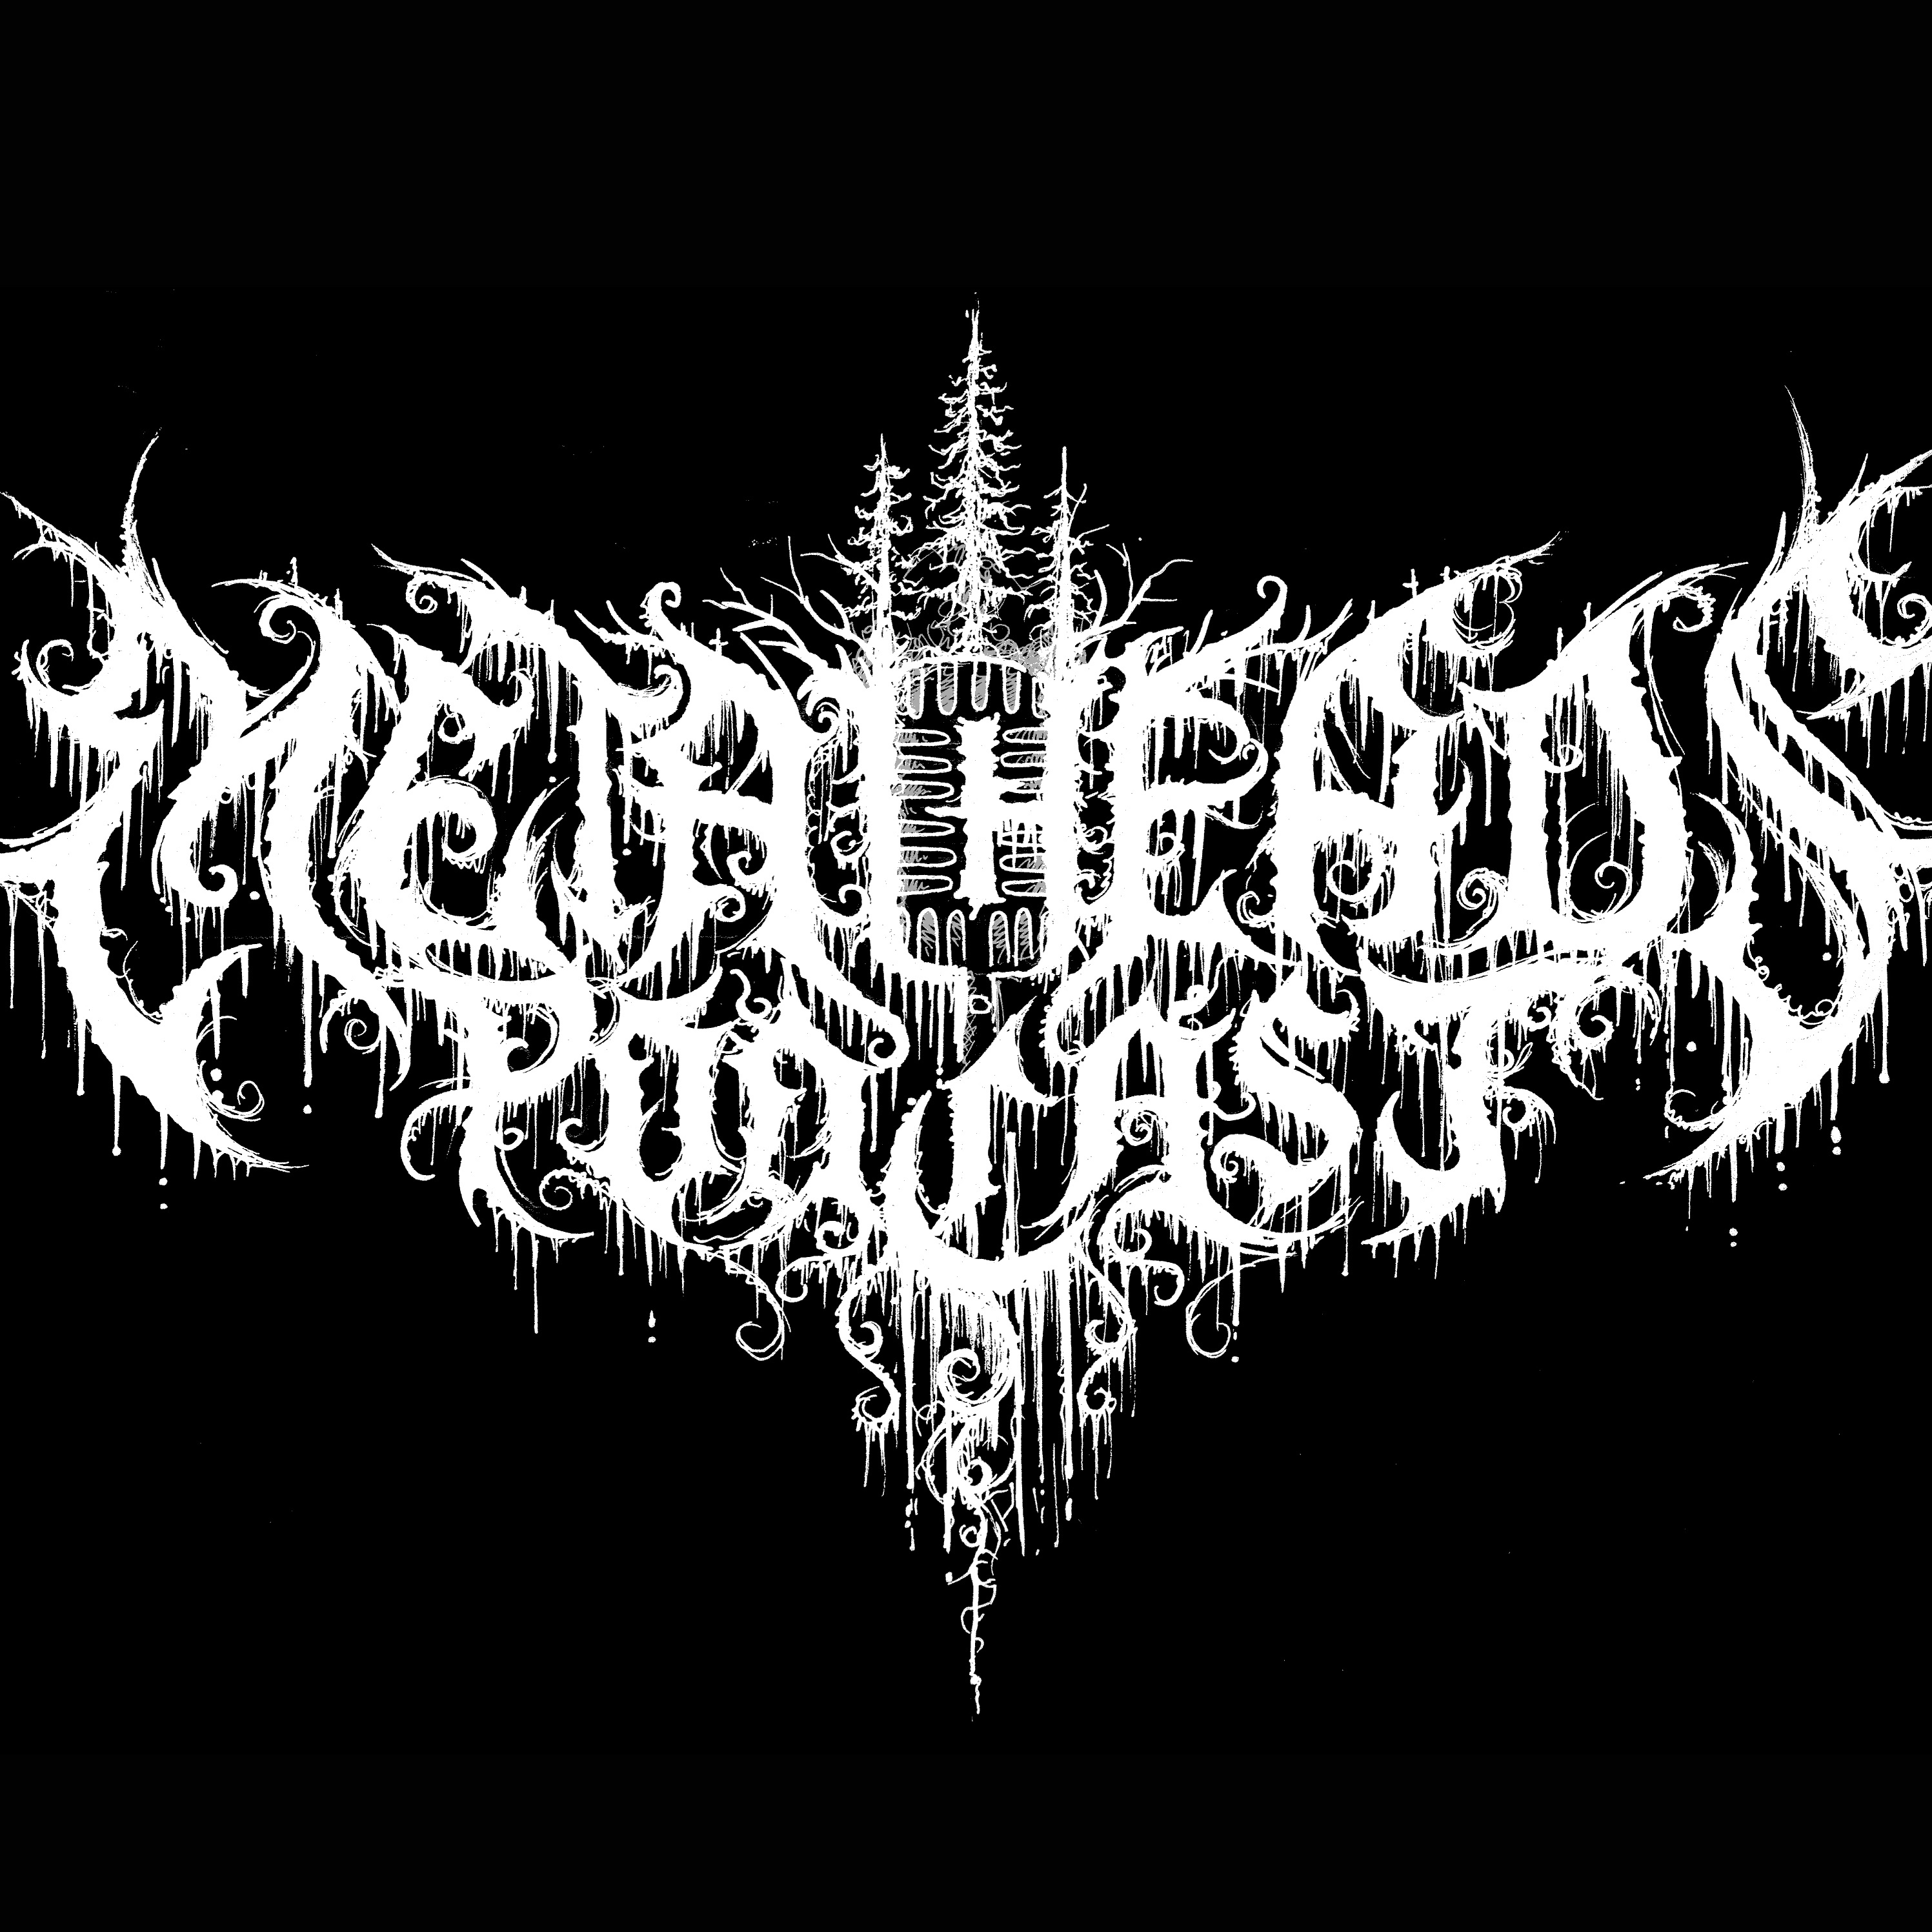 METALHEADS Podcast Episode #60: featuring RocknRoll Beer Guy